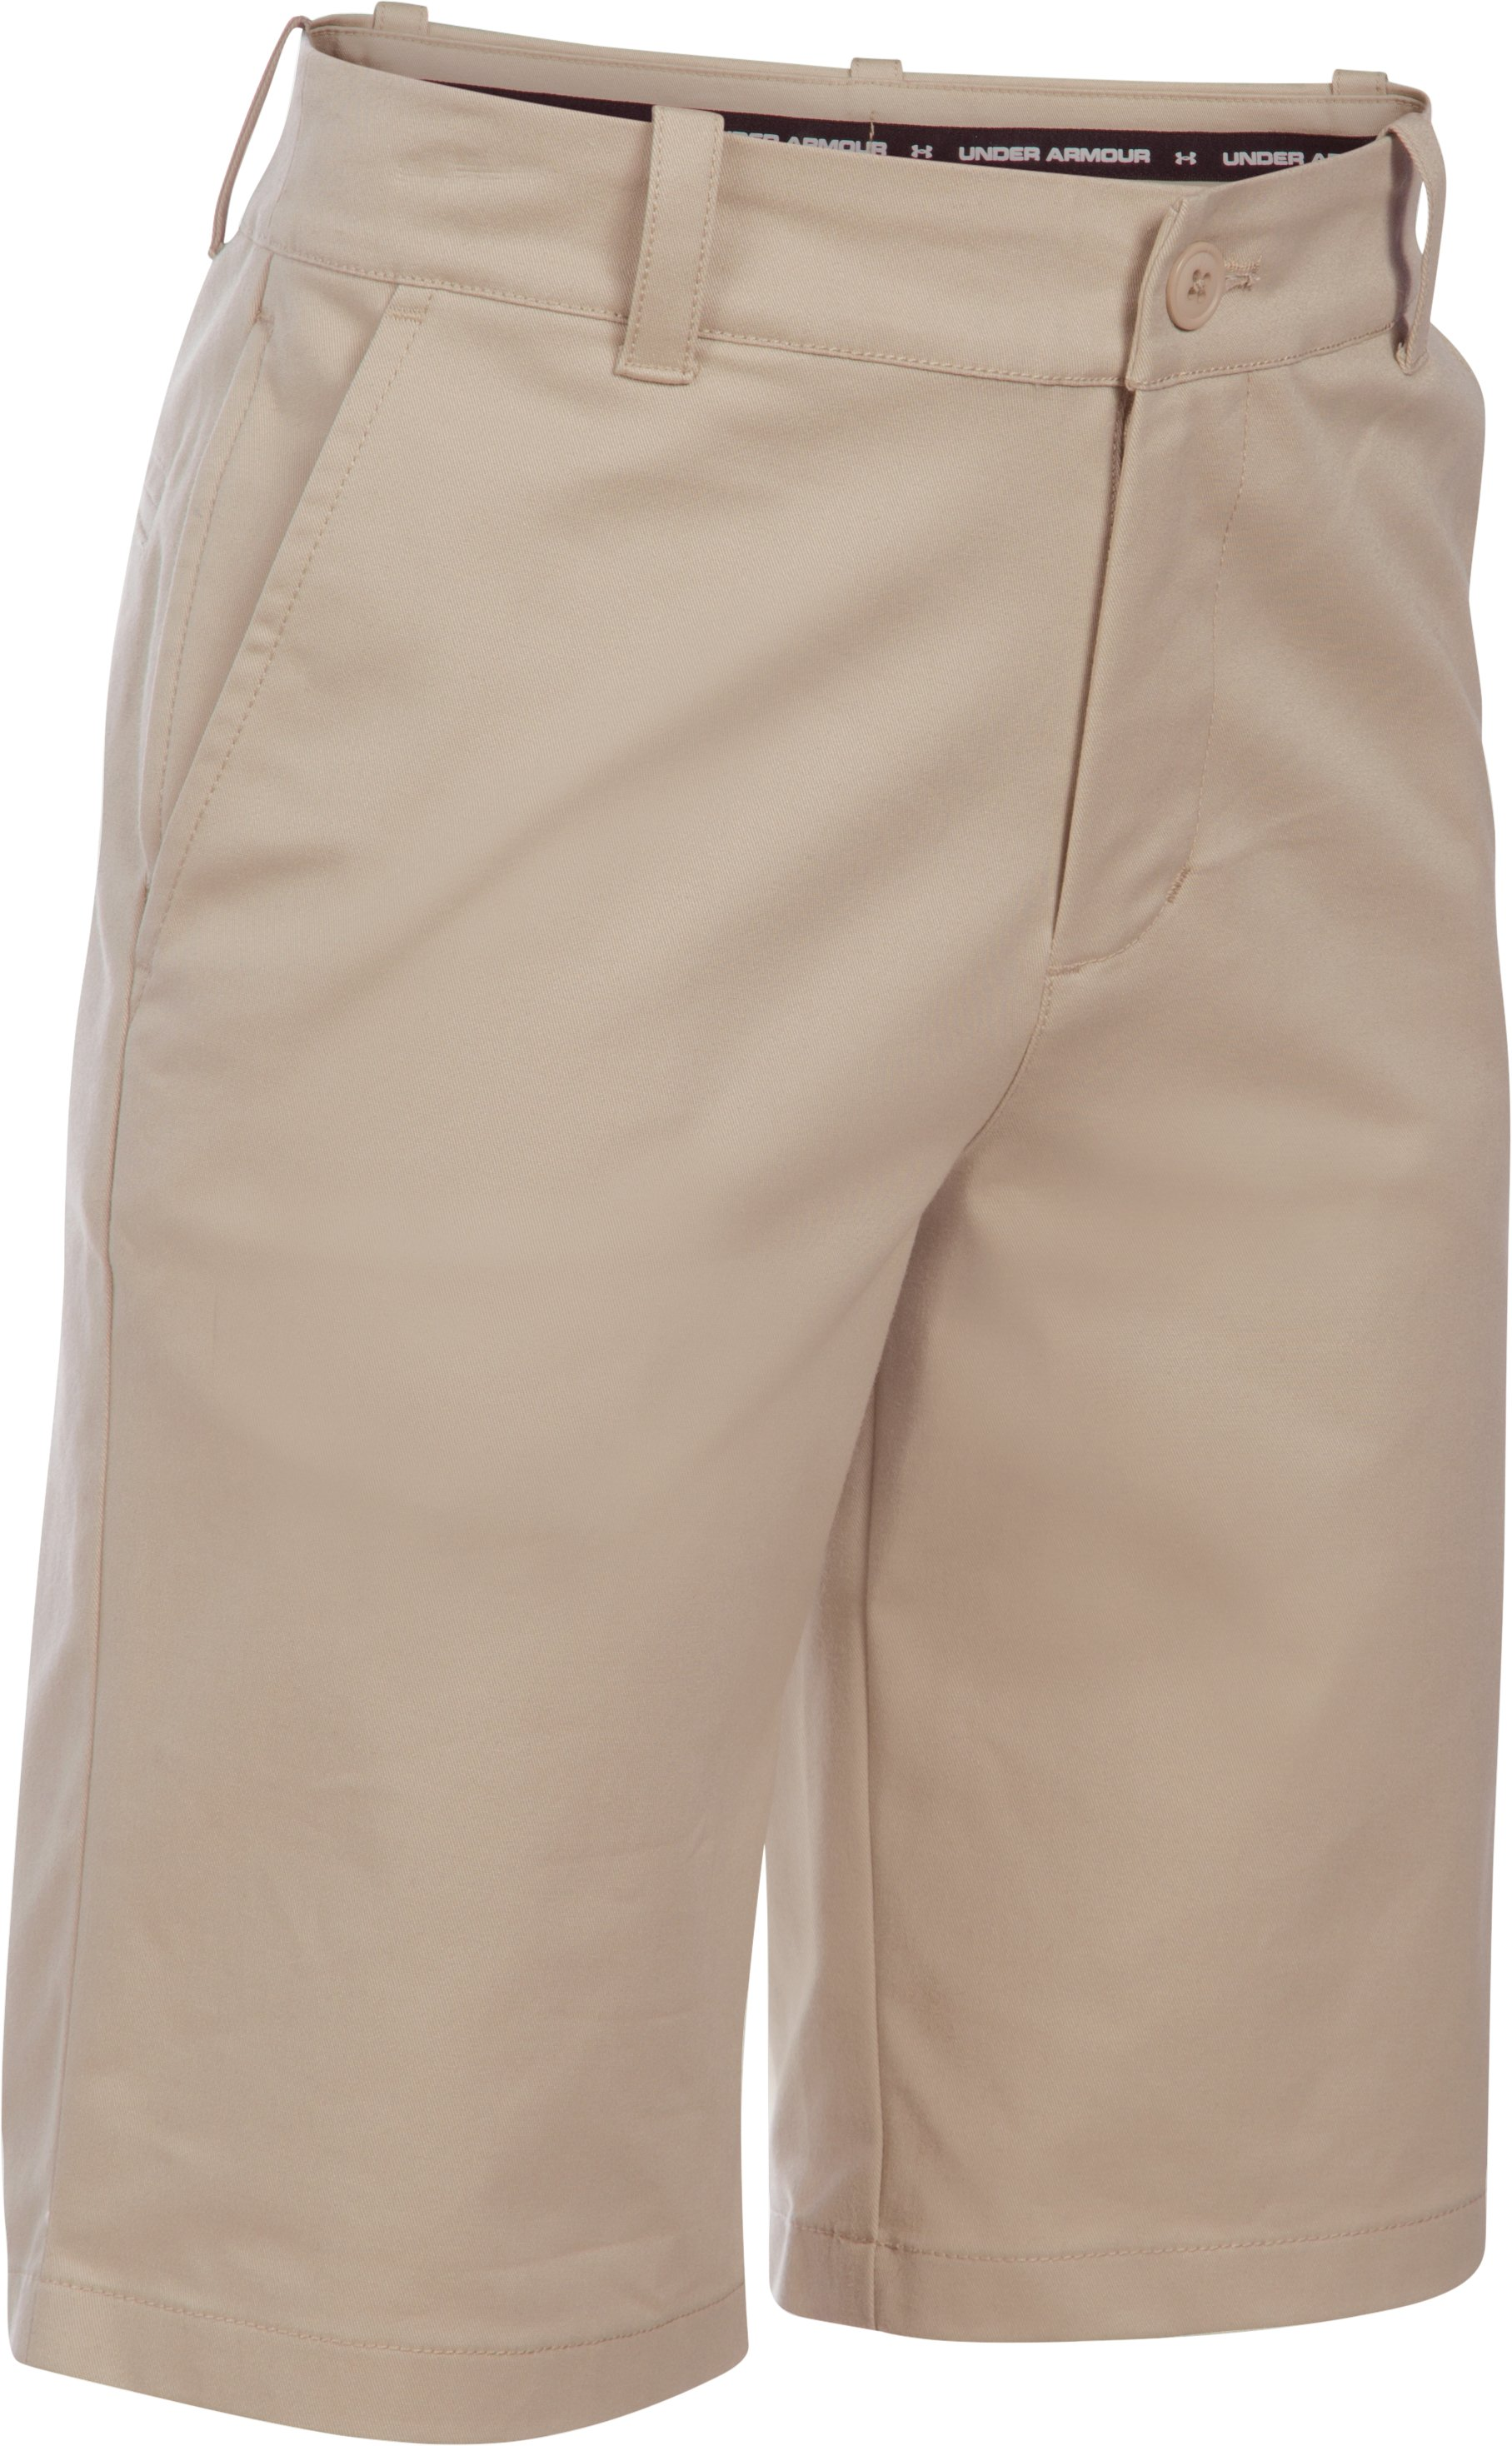 Boys' UA Uniform Chino Shorts – Pre-School, Desert Sand, zoomed image